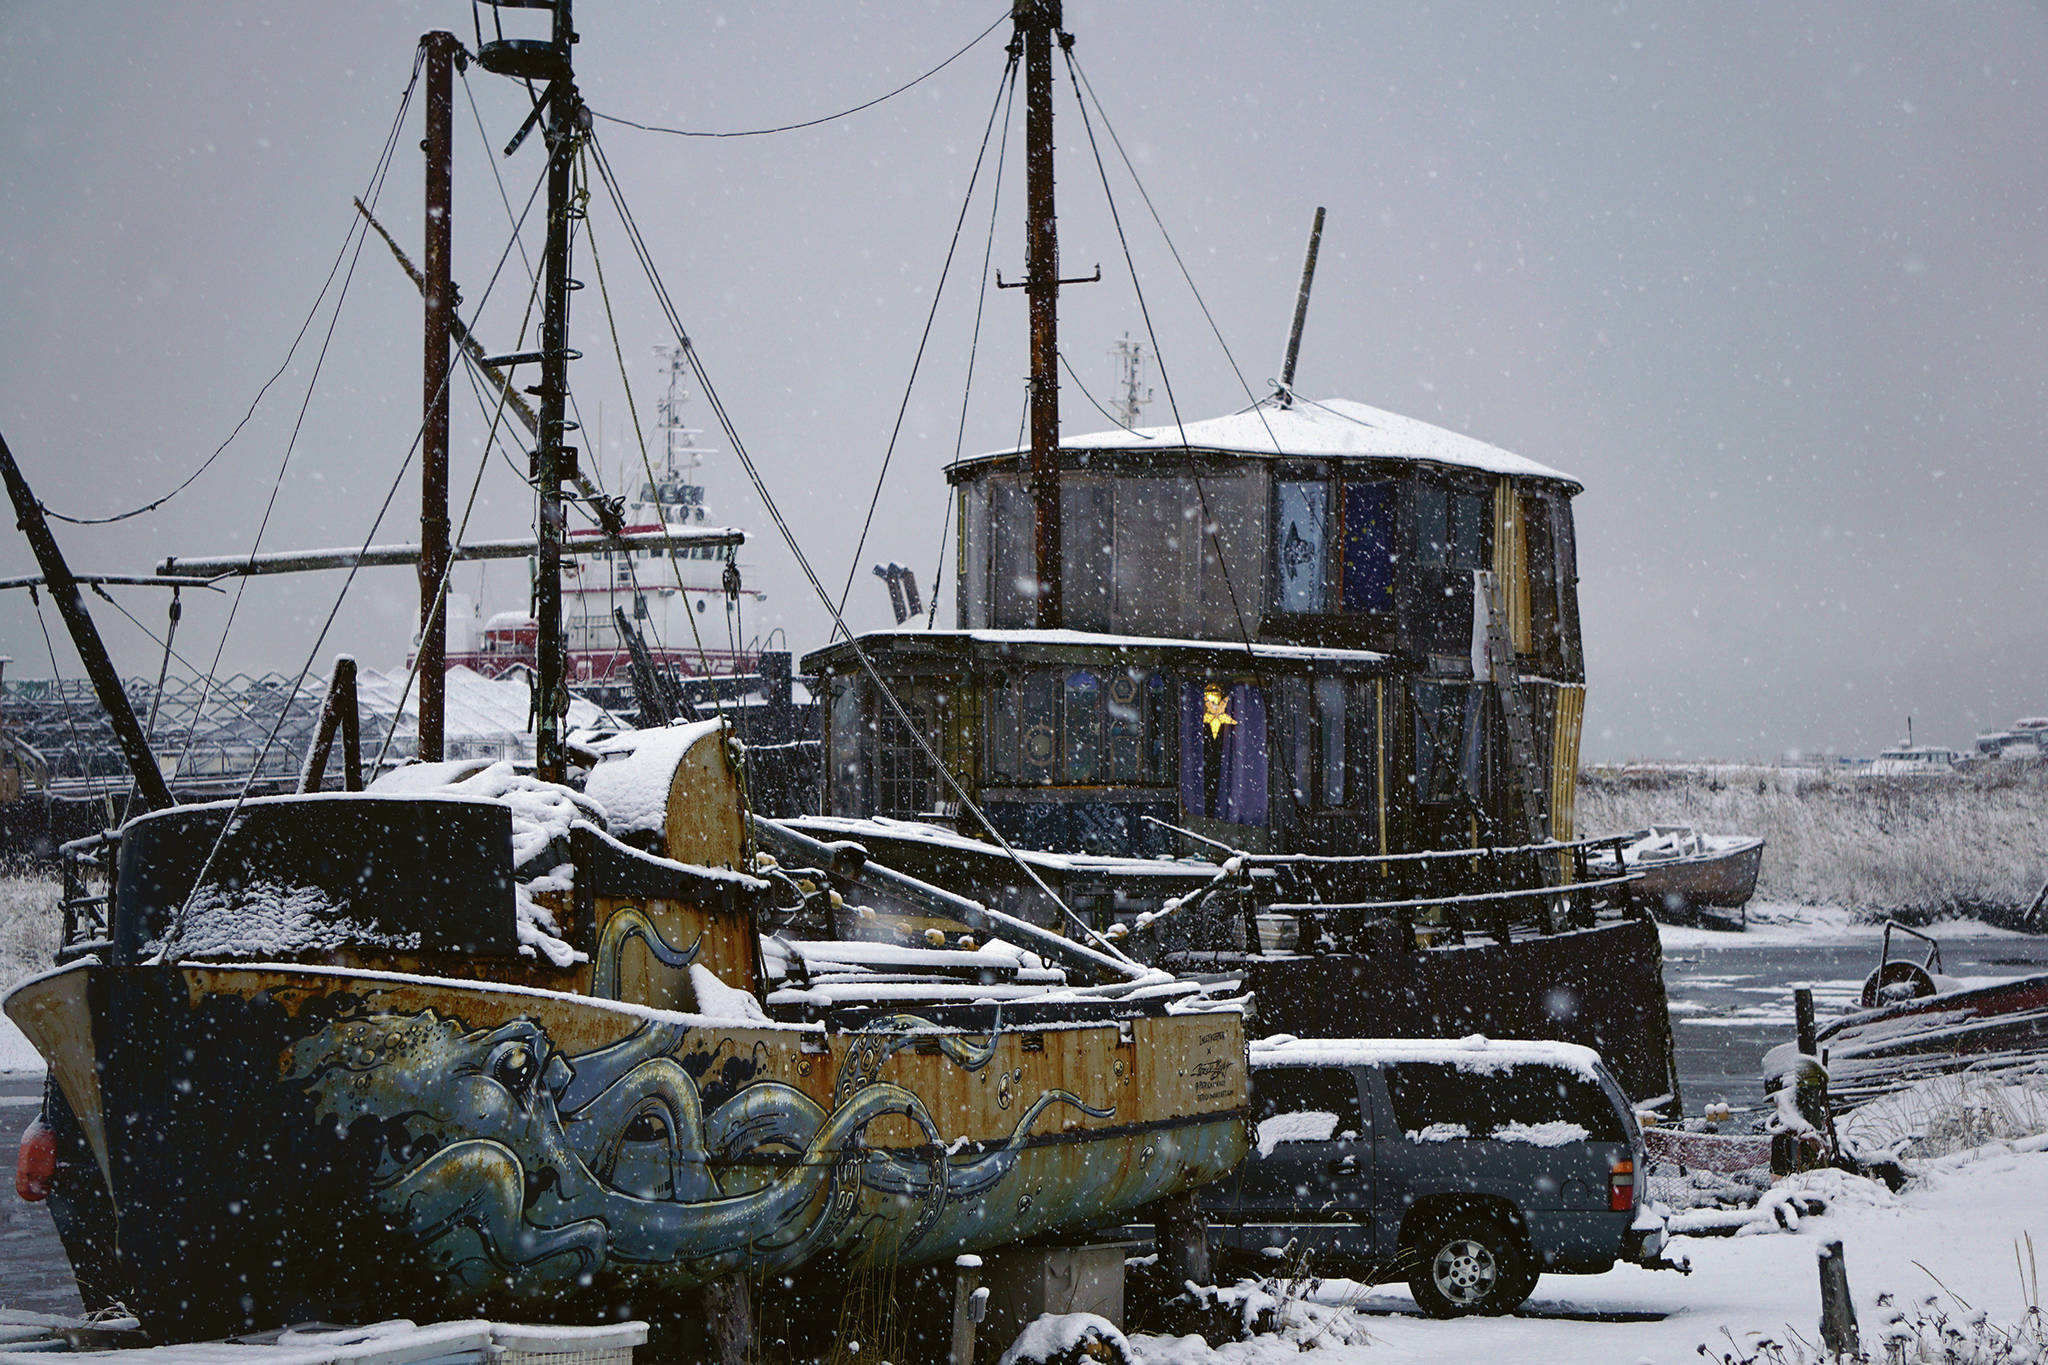 Snow falls on the Cape Lynch, right, and other boats on Sunday, Nov. 29, 2020, on the Homer Spit in Homer, Alaska. (Photo by Michael Armstrong/Homer News).